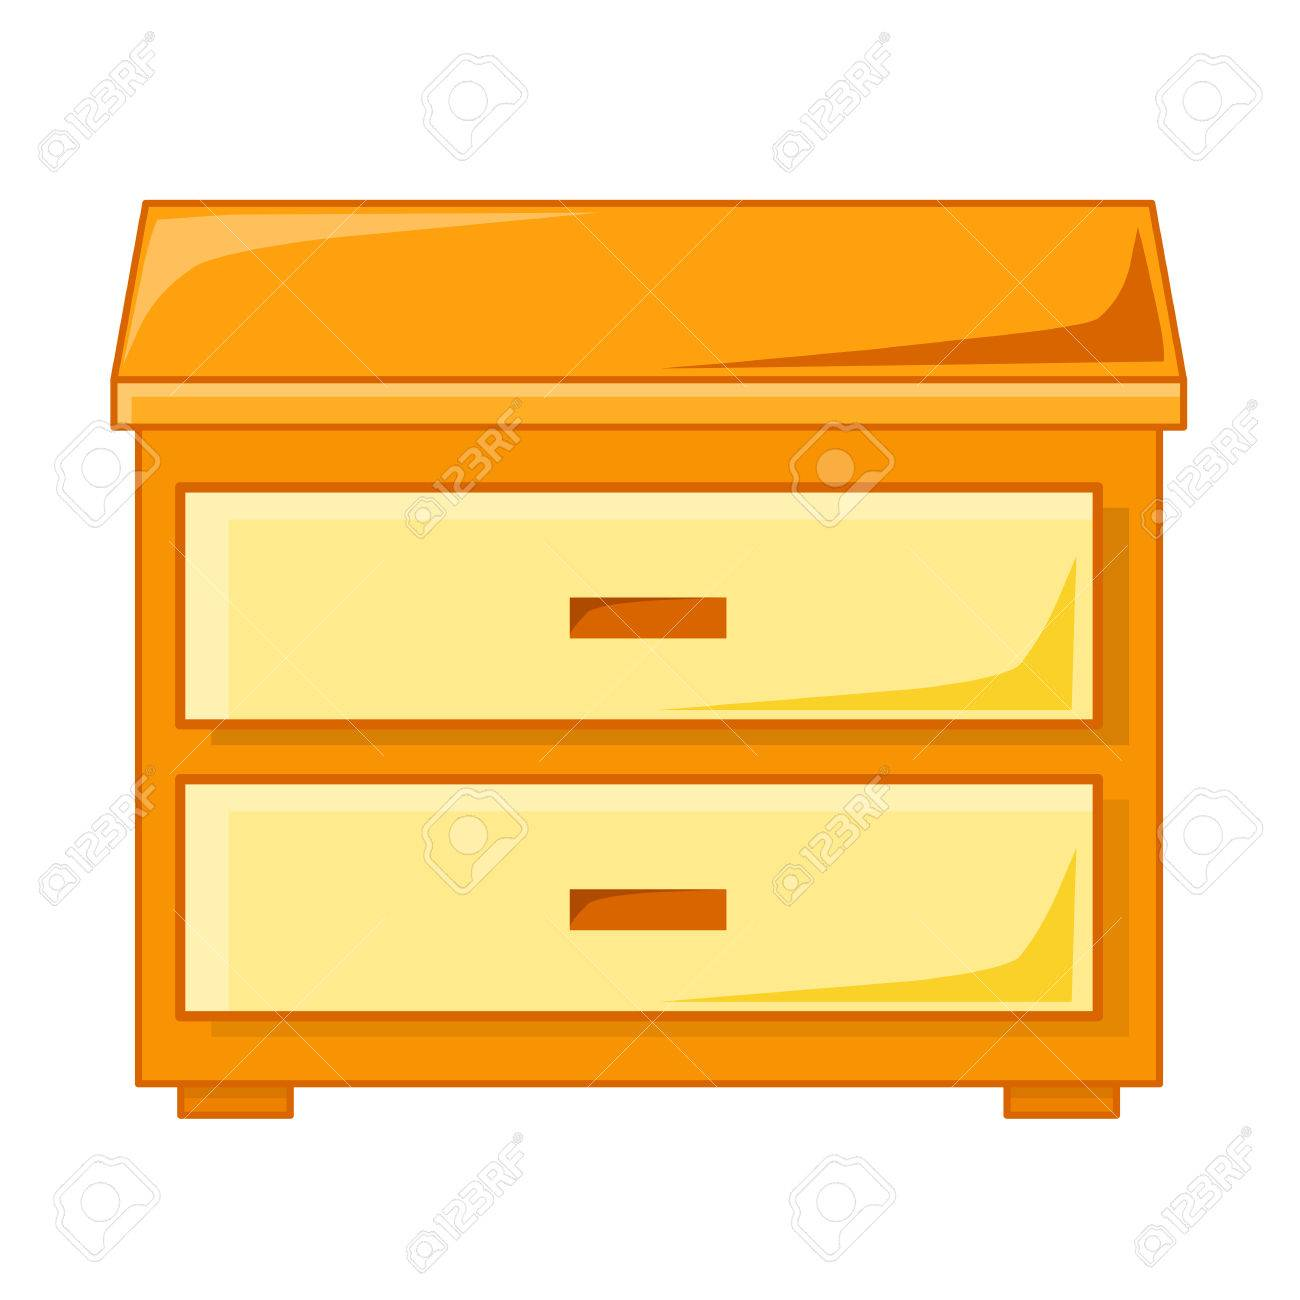 Bedside table clipart  Wooden Bedside Table Isolated Illustration On White Background ...